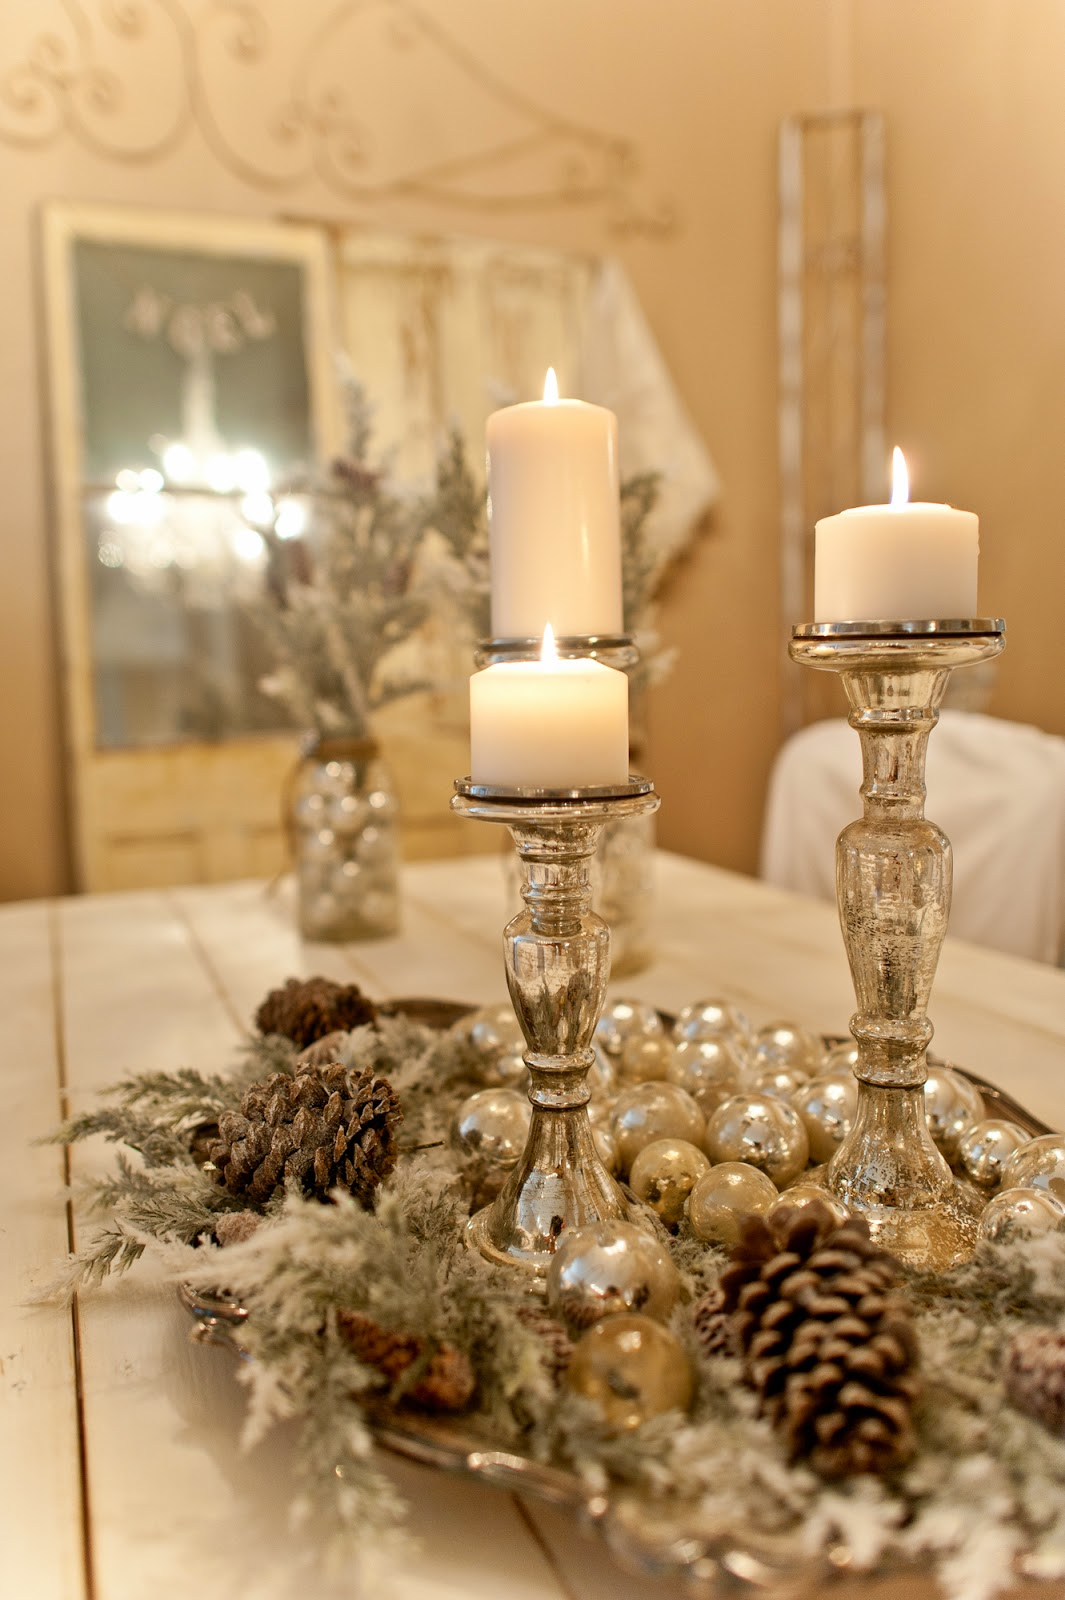 Christmas table decorations ideas 2016 - 28 Frosted Forest